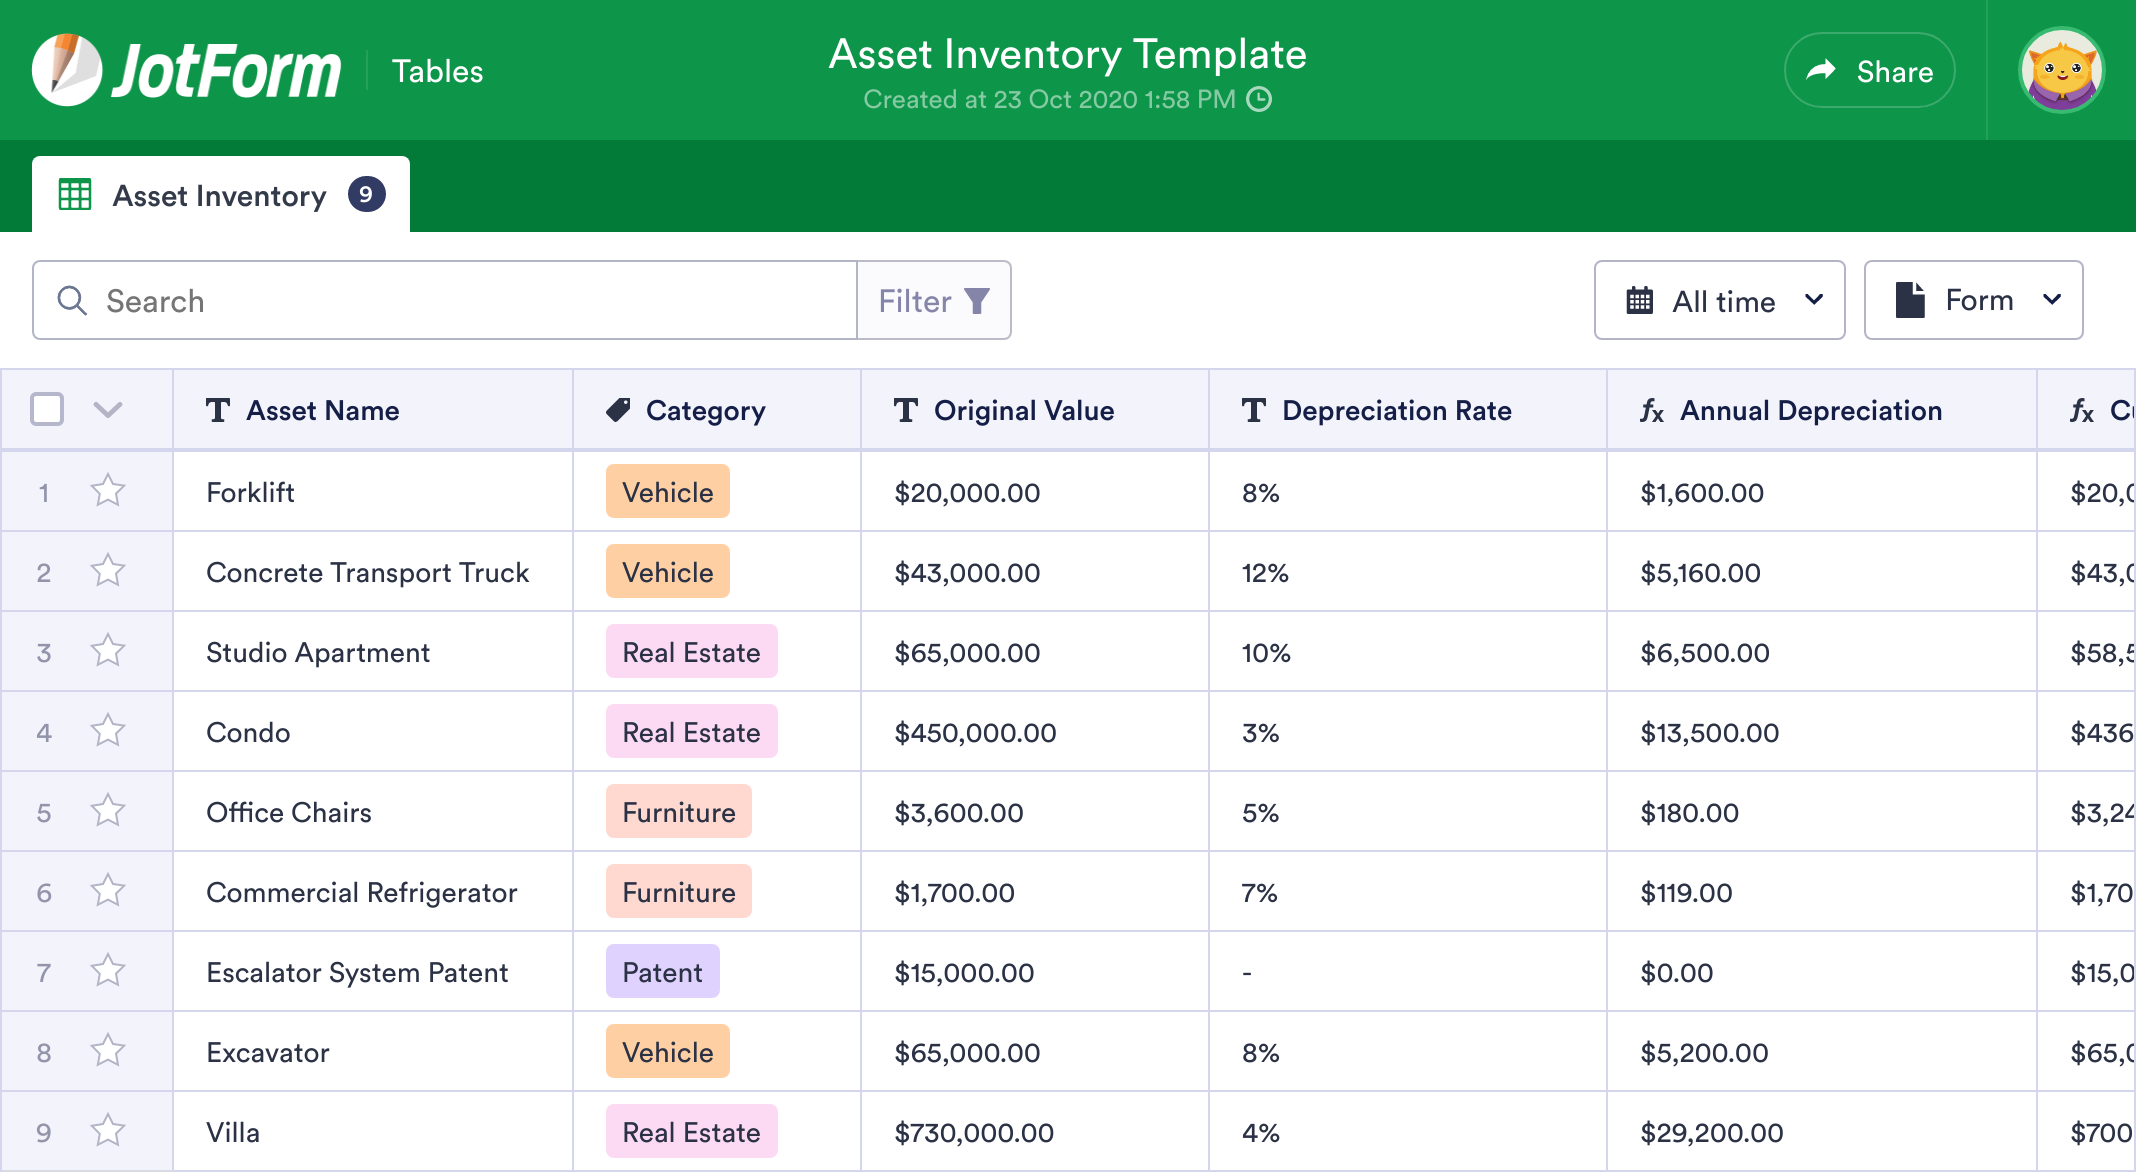 Asset Inventory Template